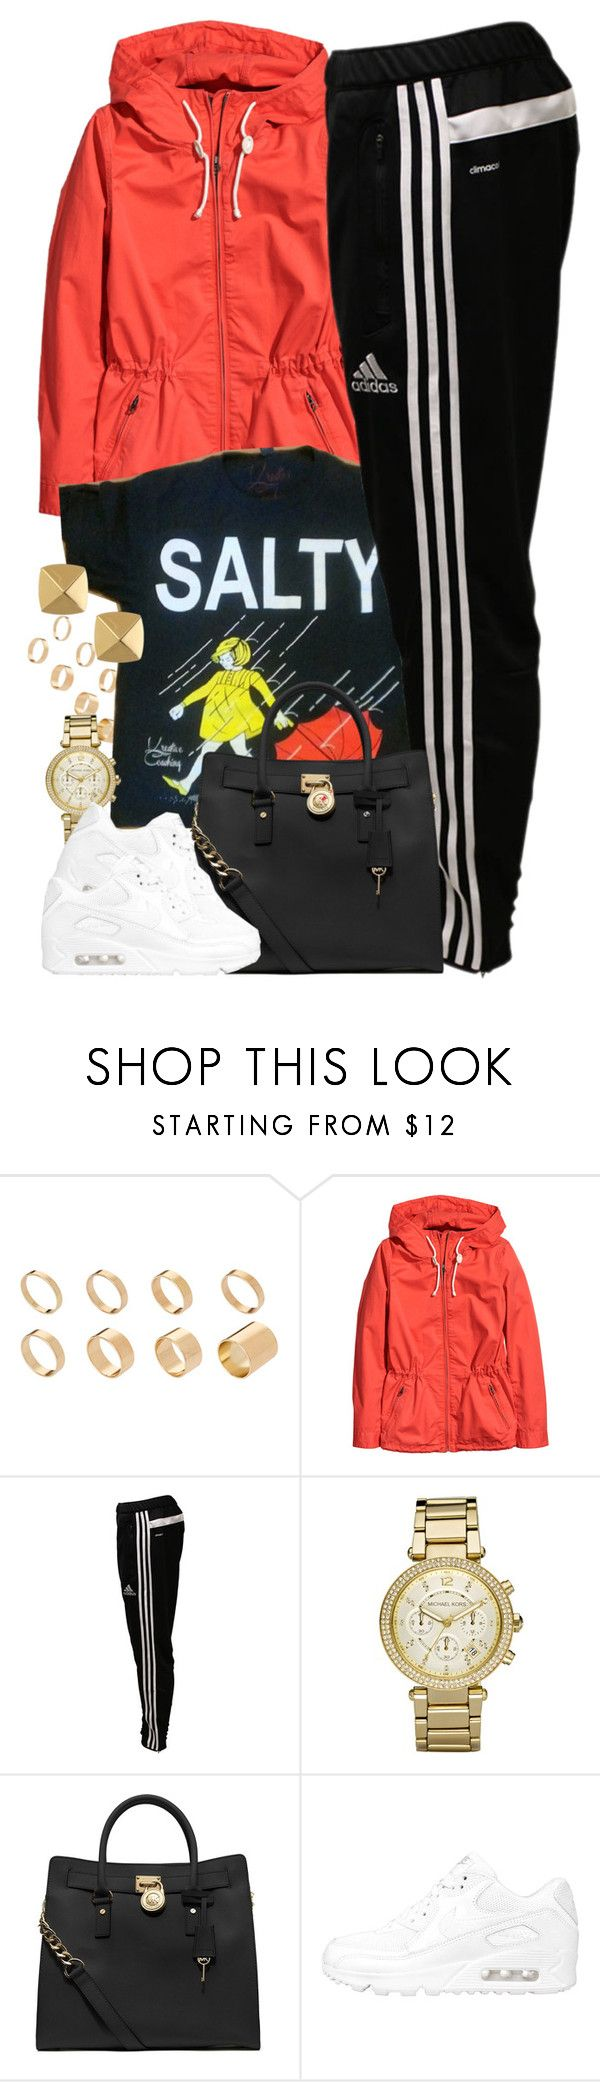 """""""Untitled #1479"""" by power-beauty ❤ liked on Polyvore featuring ASOS, H&M, adidas, Michael Kors, MICHAEL Michael Kors, NIKE and Vince Camuto"""